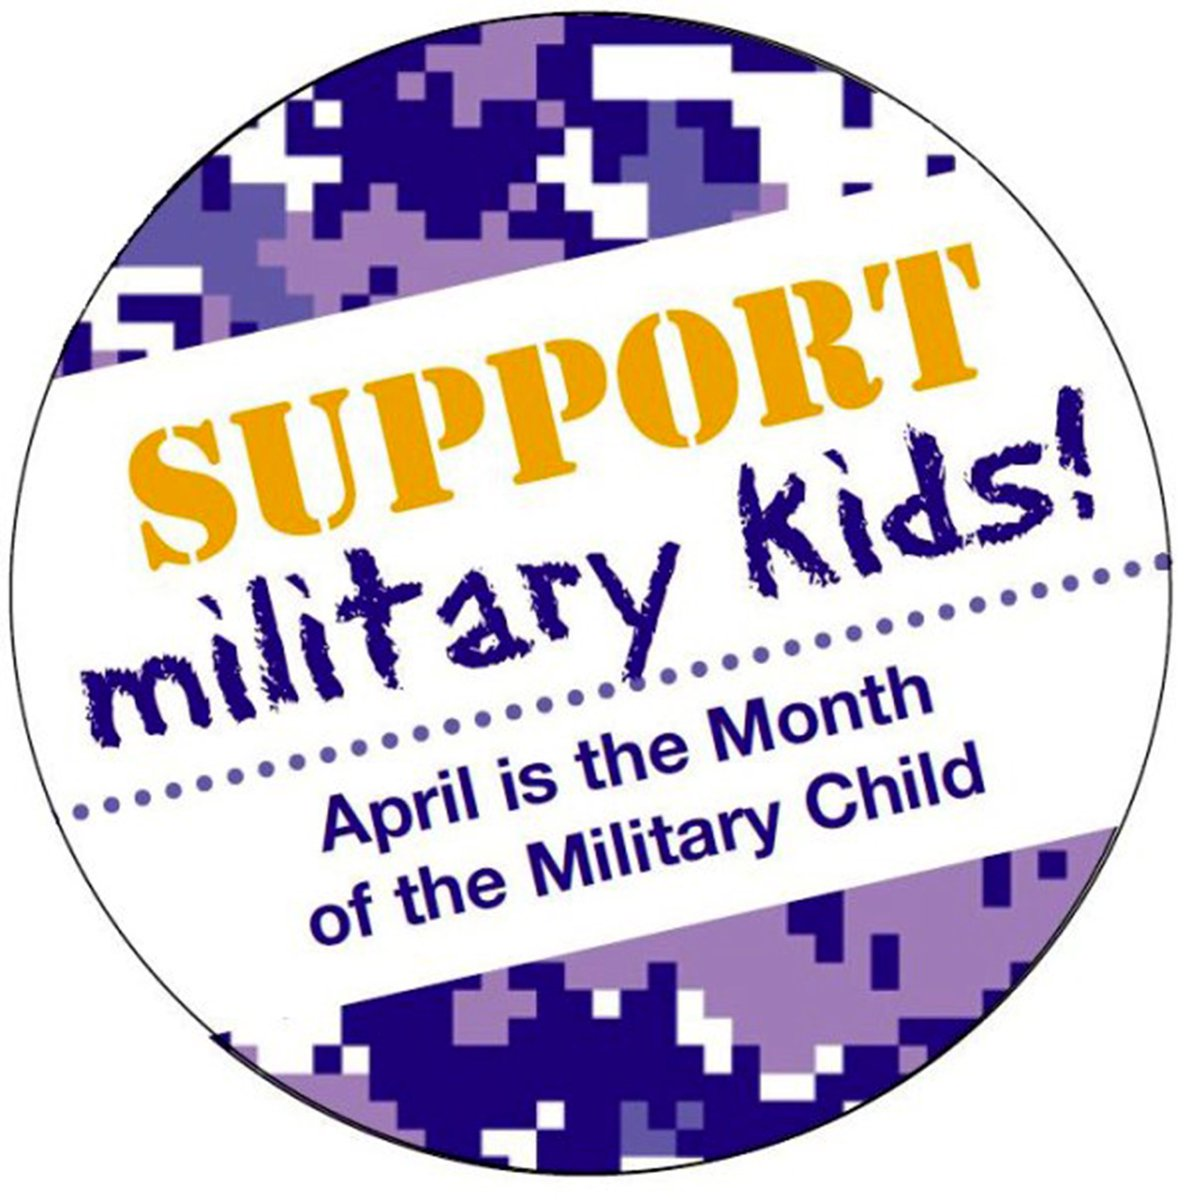 April is Month of the Military Child. We celebrate our students and thank all military families for your honorable service. <a target='_blank' href='http://twitter.com/JBMHH'>@JBMHH</a> <a target='_blank' href='http://twitter.com/OakridgeConnect'>@OakridgeConnect</a> <a target='_blank' href='http://twitter.com/APSDiscovery'>@APSDiscovery</a> <a target='_blank' href='http://twitter.com/MrReevesDES'>@MrReevesDES</a> <a target='_blank' href='https://t.co/7FTV21fpX0'>https://t.co/7FTV21fpX0</a>